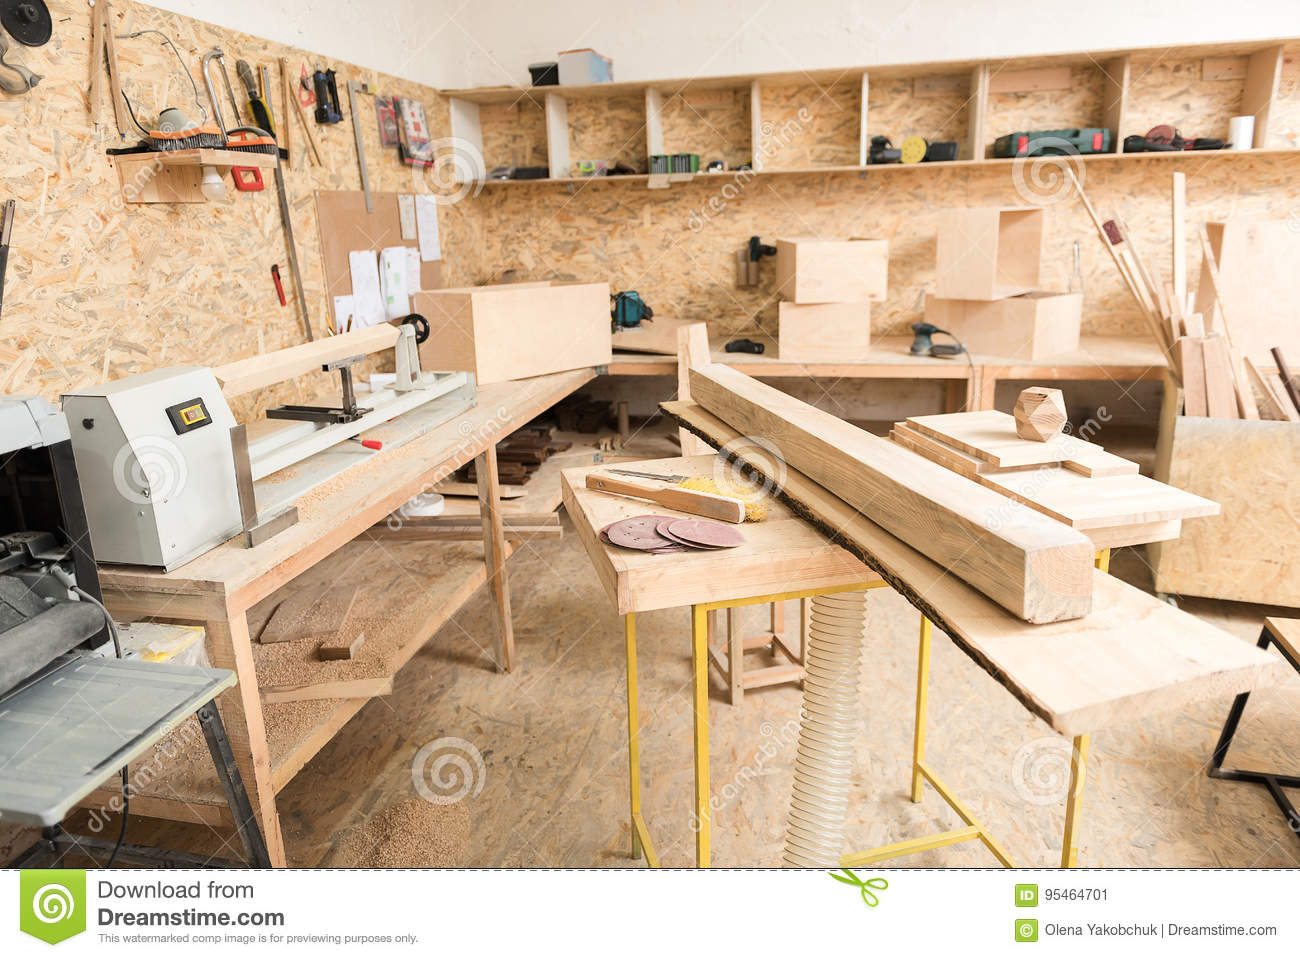 woodworking tools are in workshop stock image - image of